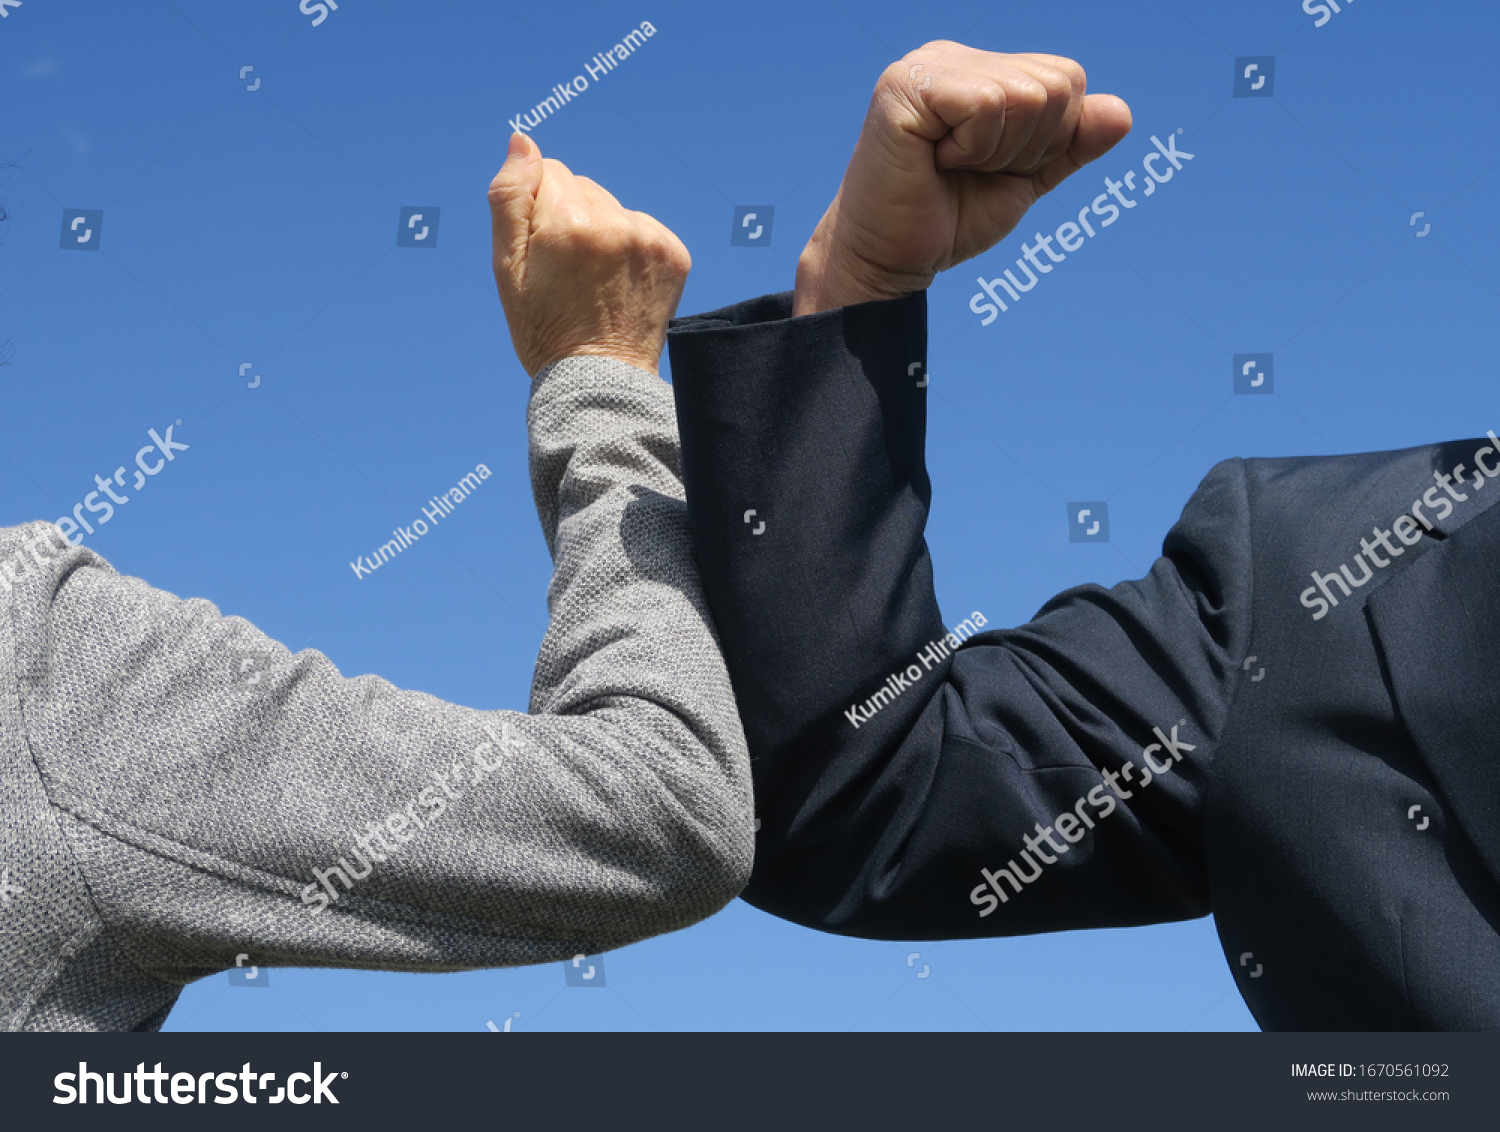 Elbow bumping. A new way of greeting to avoid the spread of coronavirus (COVID-19). Two people (a man and a woman) bump elbows instead of hug or handshake. New normal. #1670561092